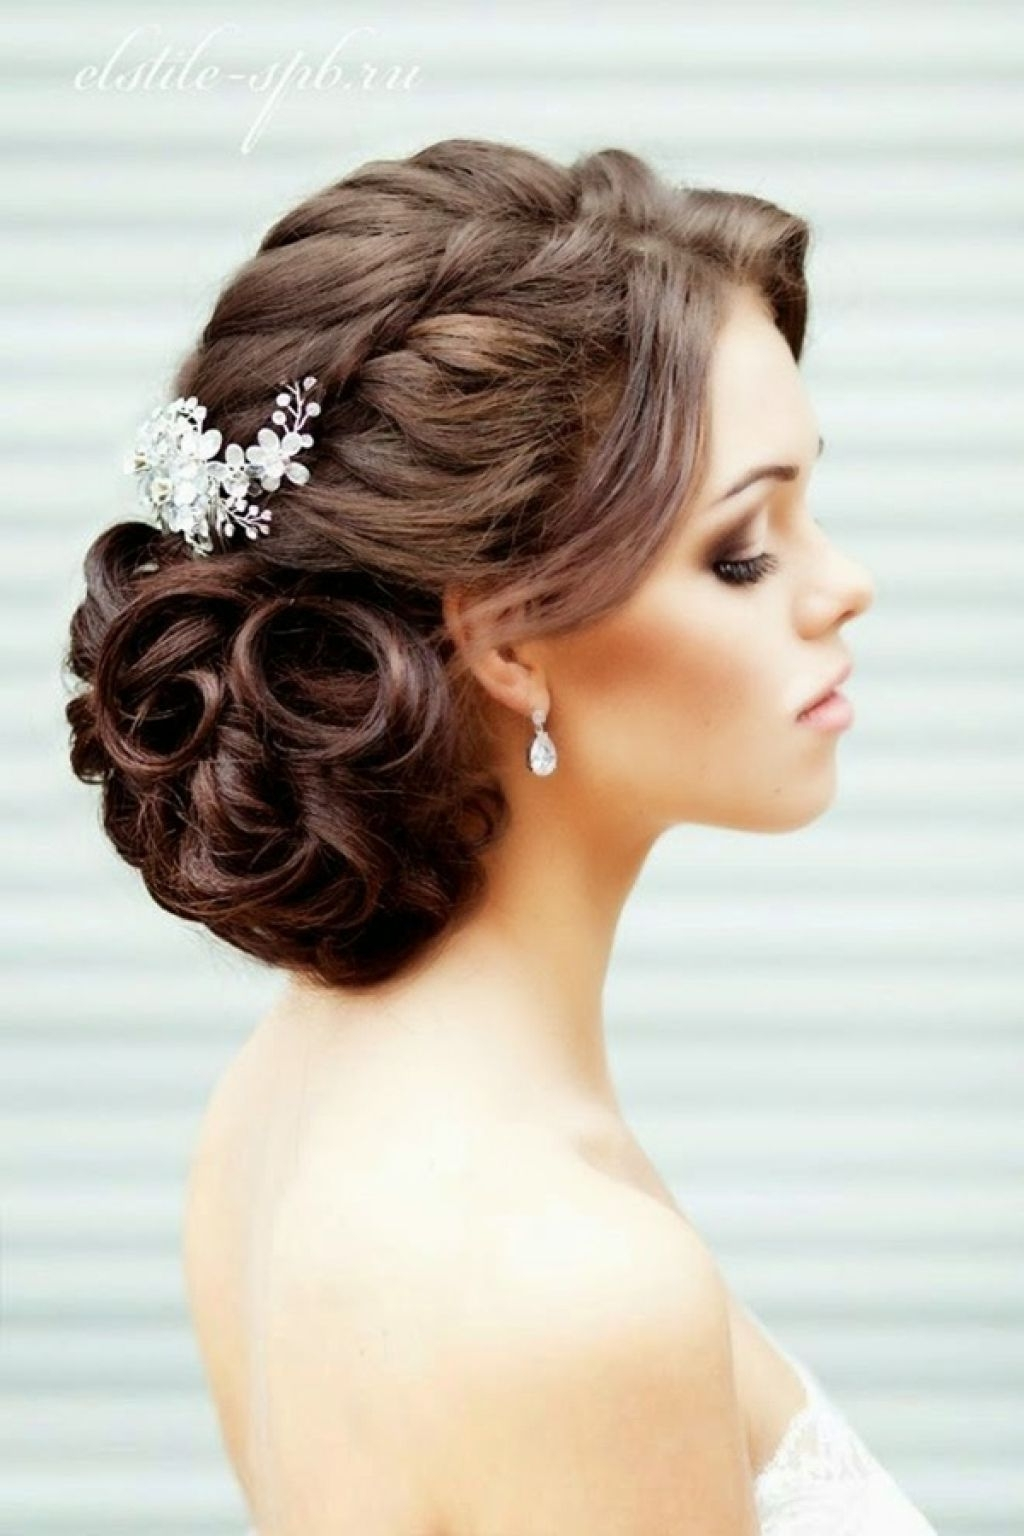 Favorite Wedding Hairstyles With Long Hair For 3 Easy Updo Hairstyles For Long Hair Hairstyle Tips Bridesmaid (View 6 of 15)